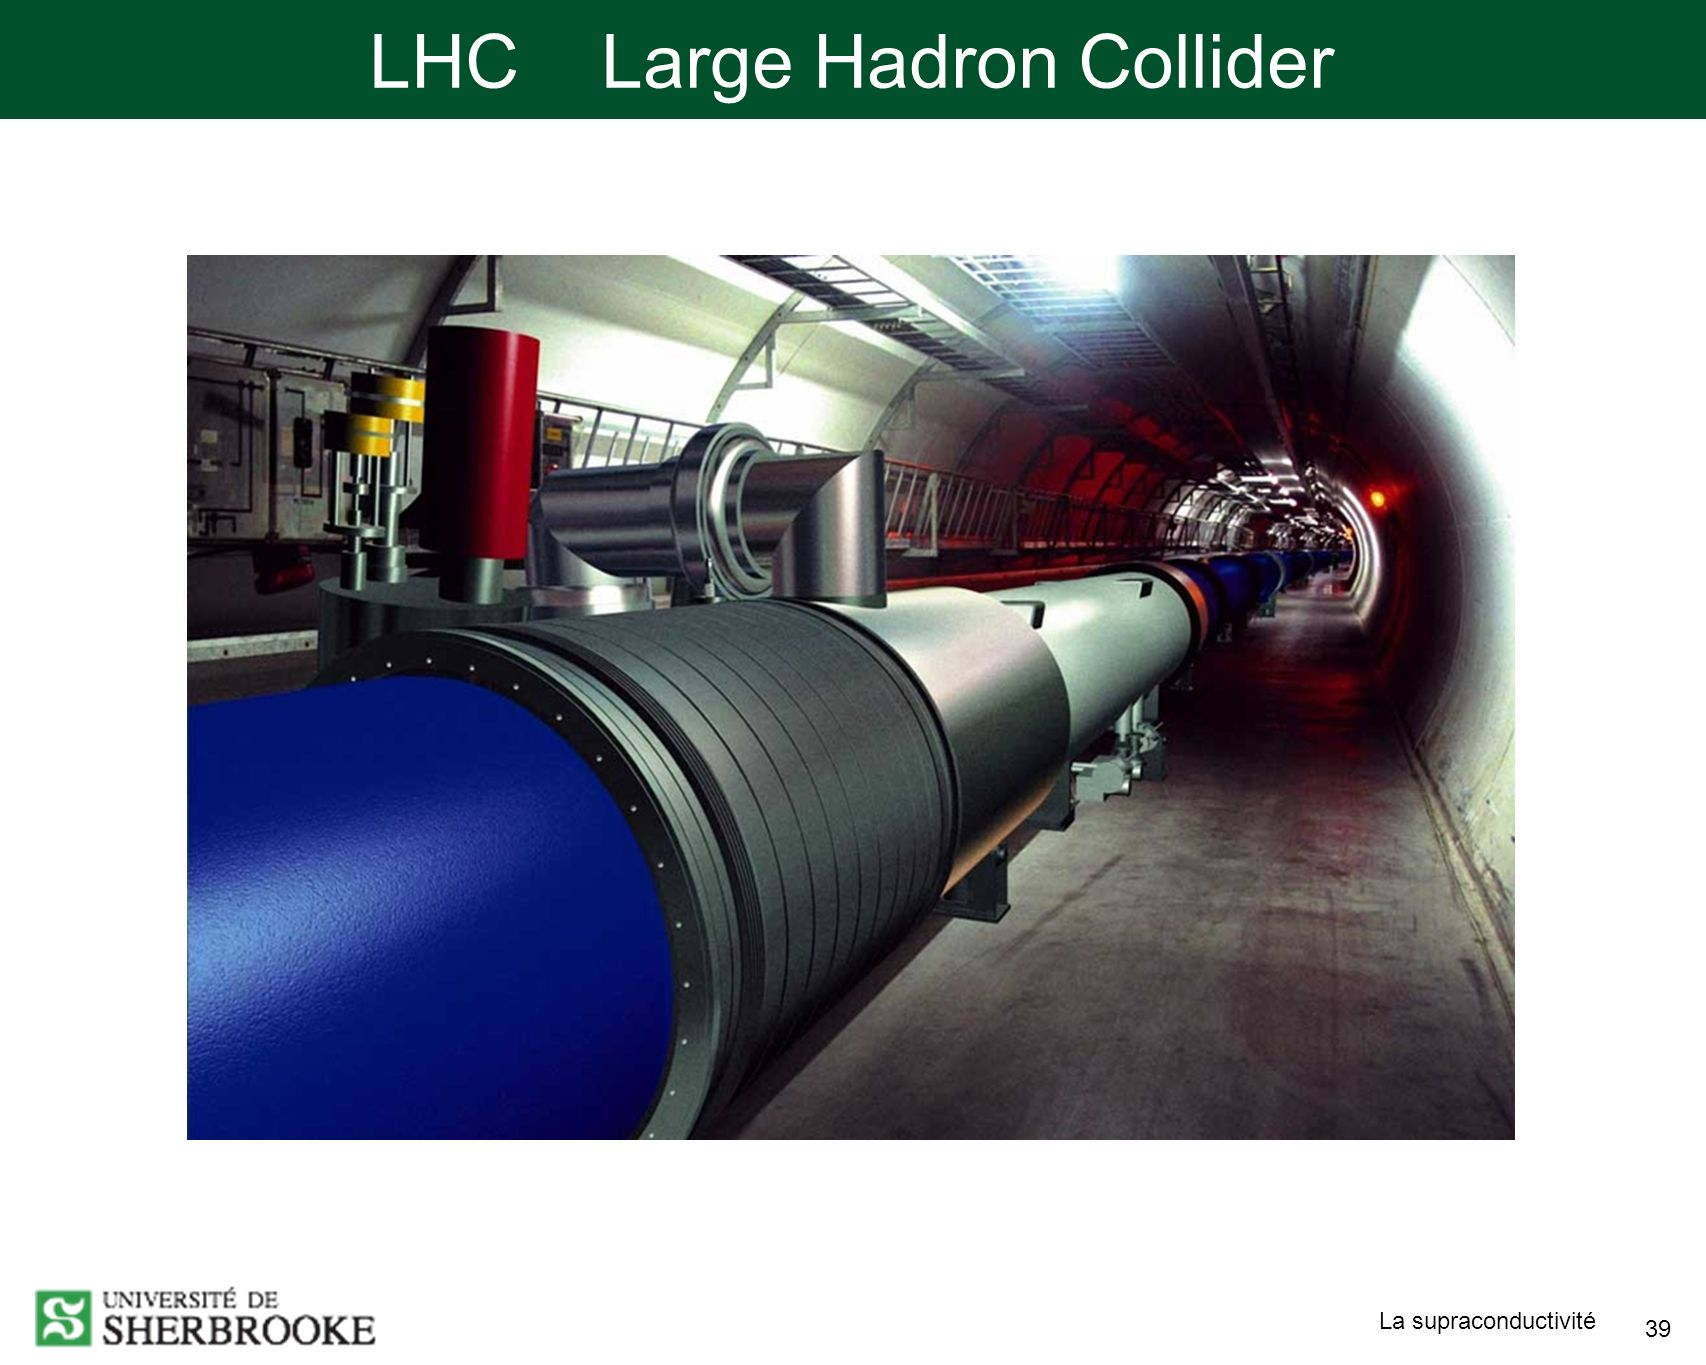 La supraconductivité 39 LHC Large Hadron Collider